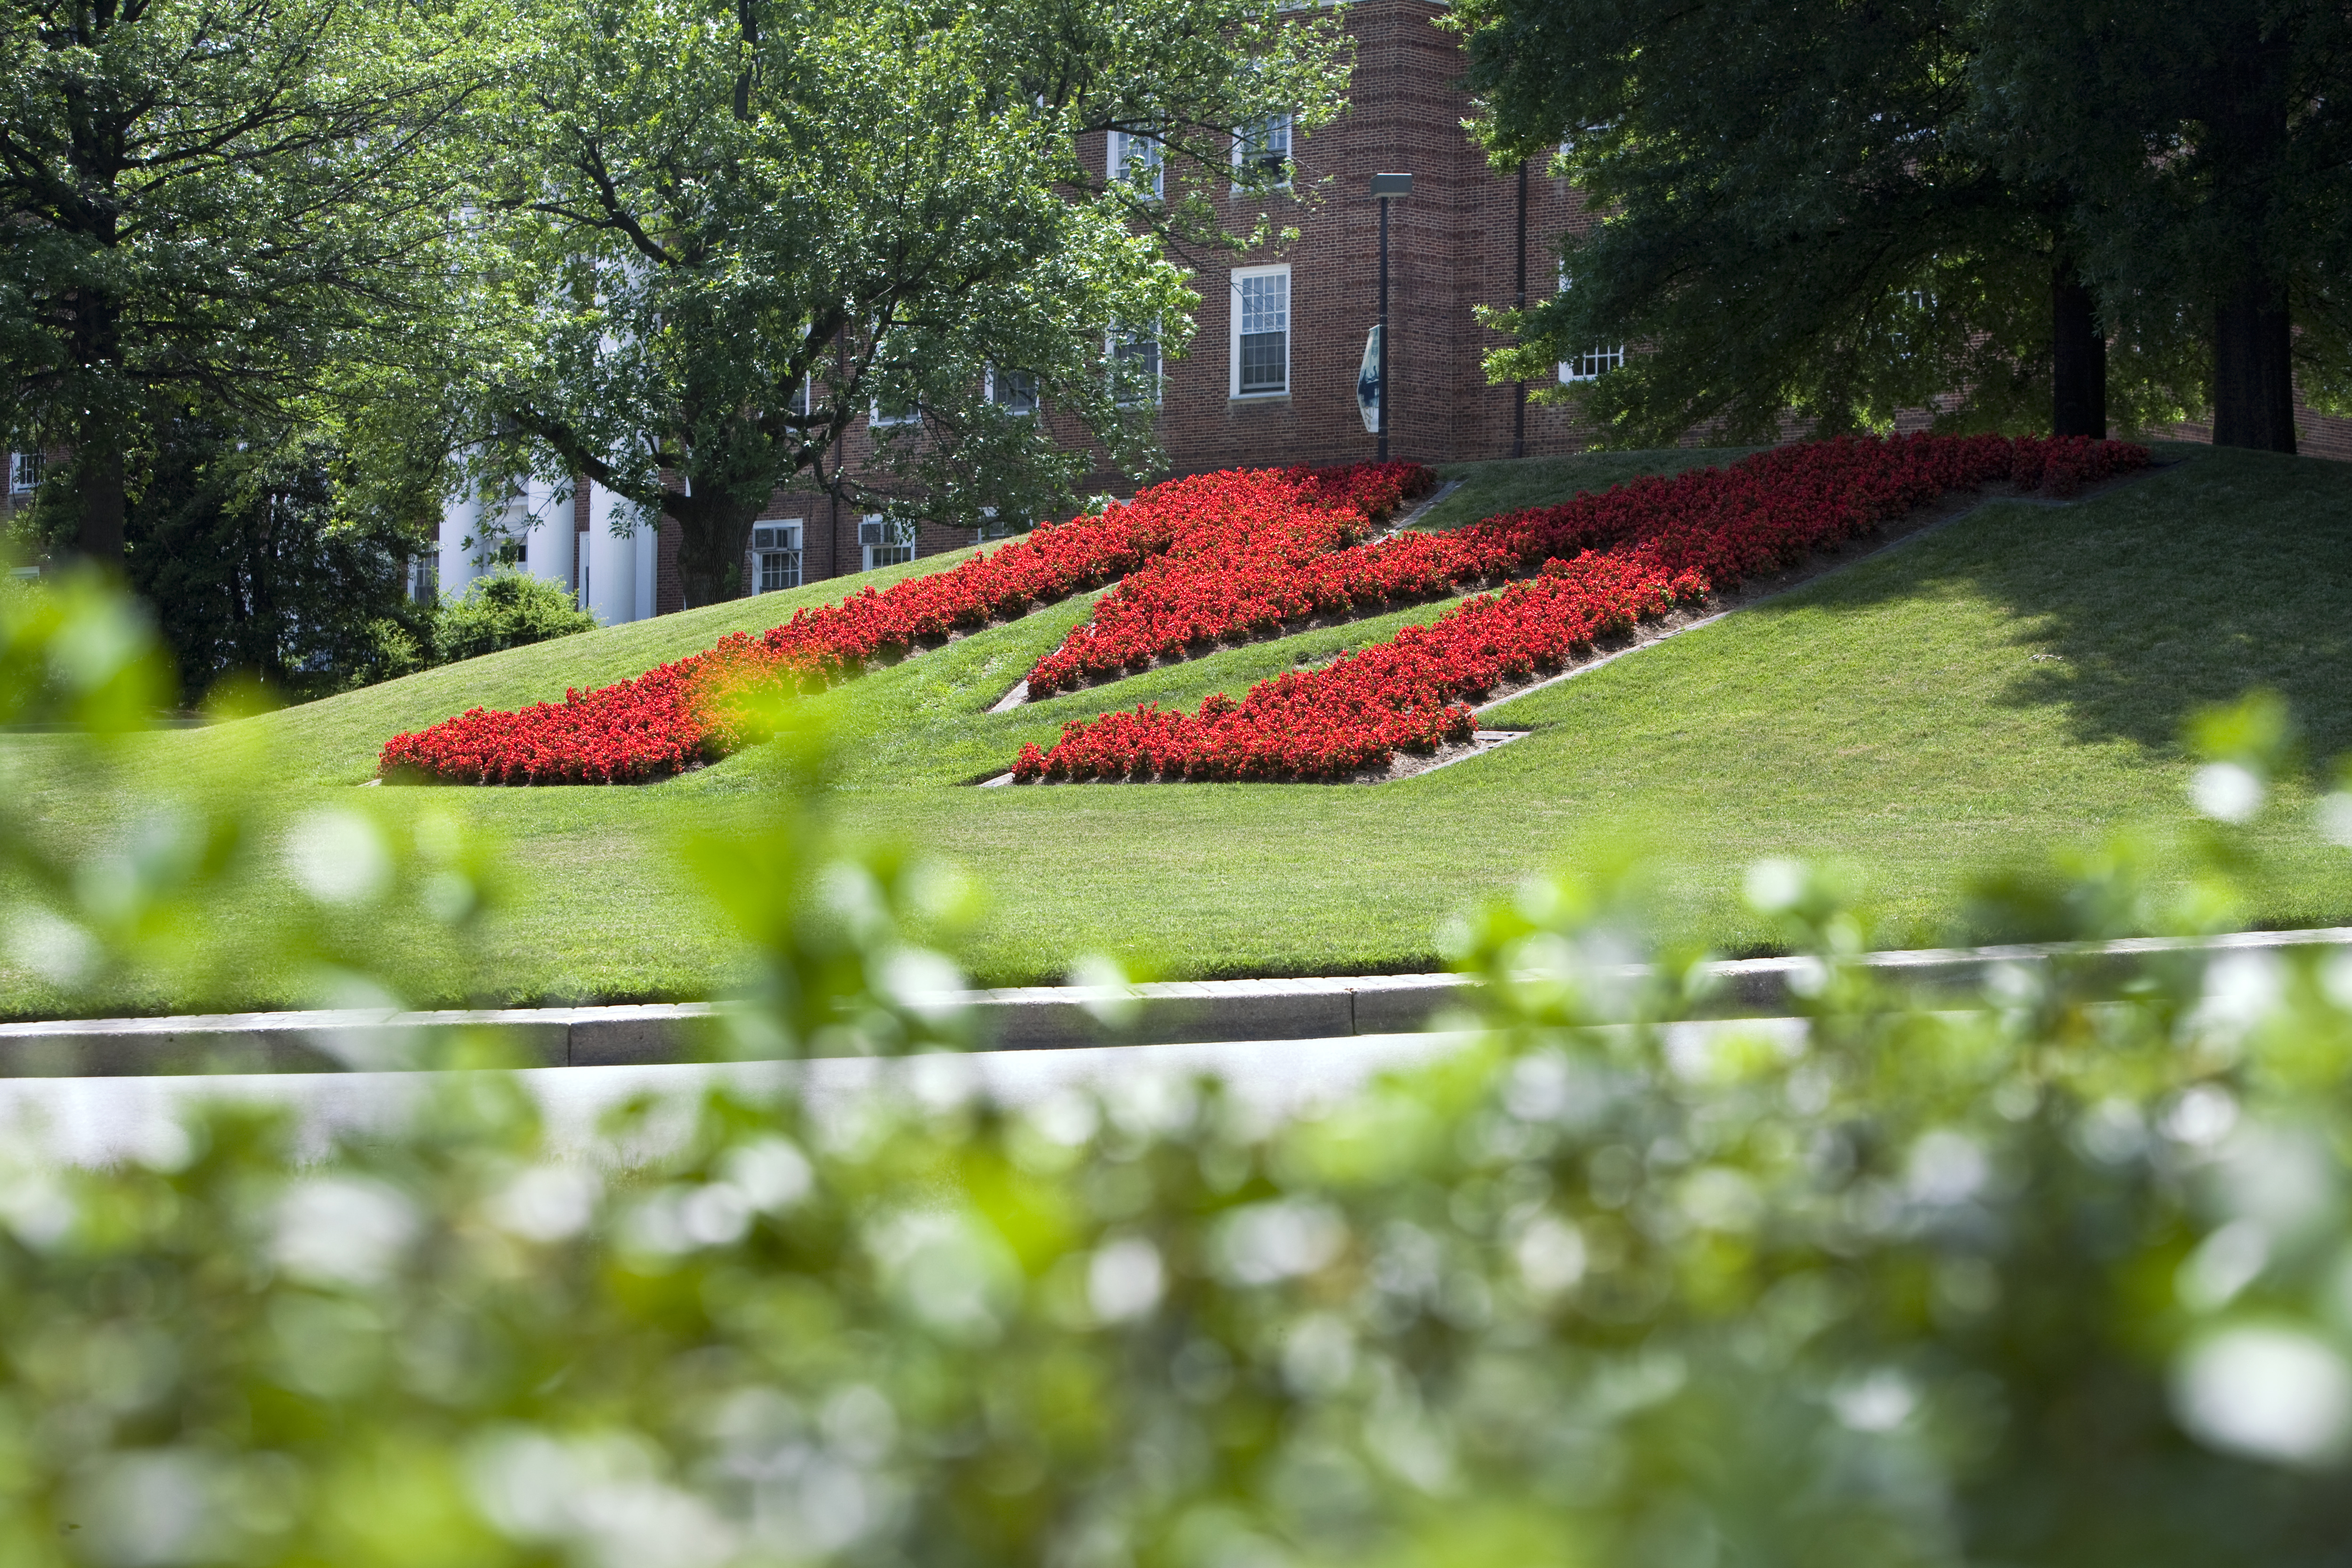 Red M Composed of Flowers in UMD Campus Driving Circle